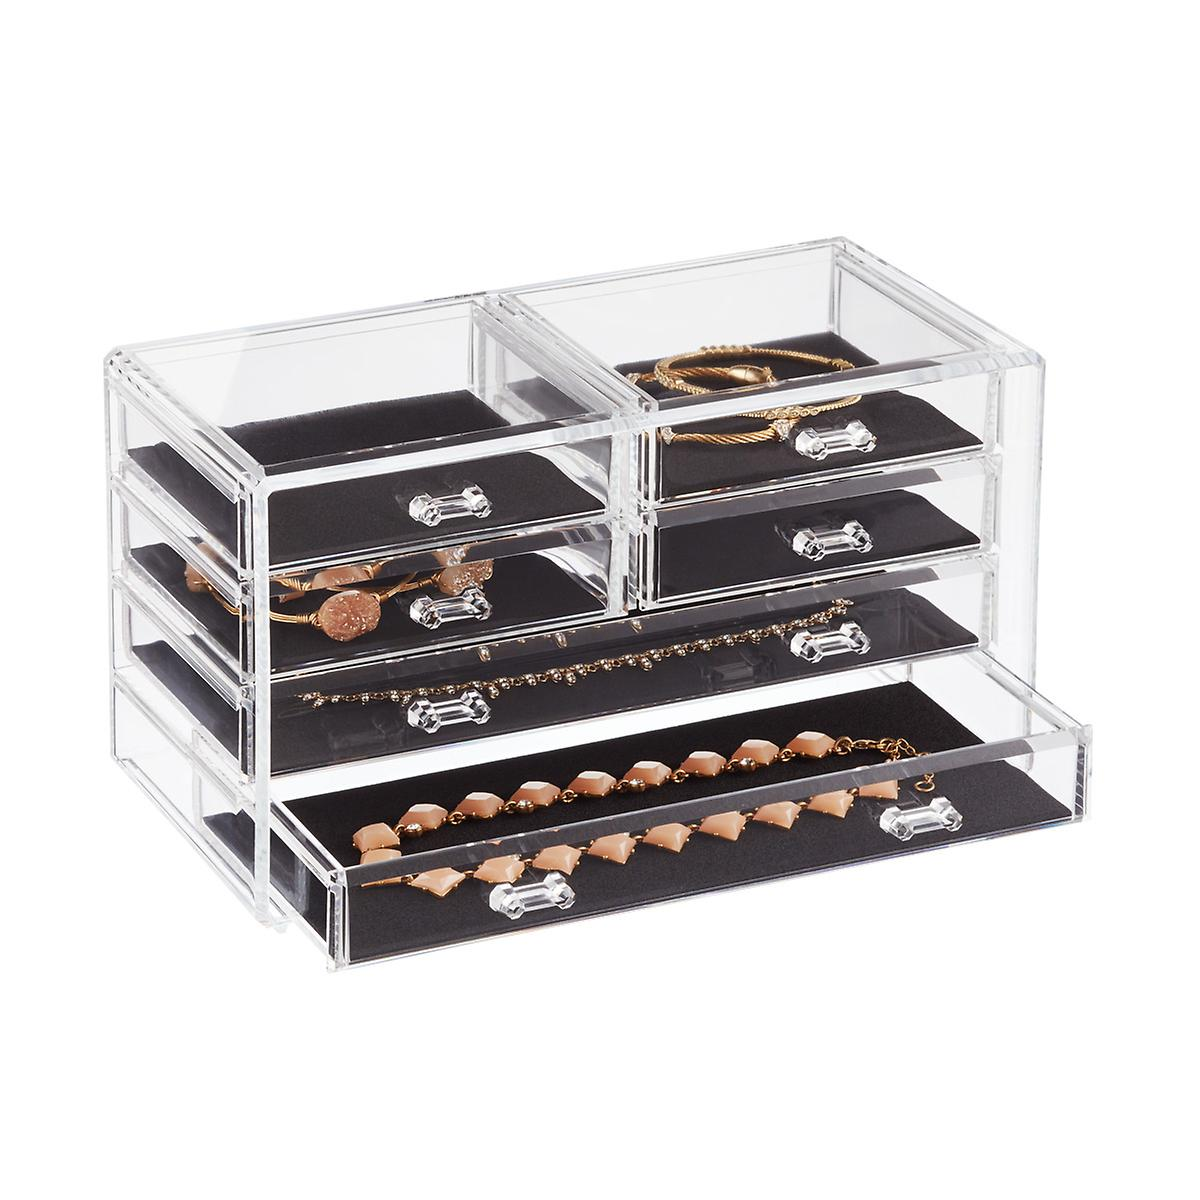 6 Drawer Premium Clear Acrylic Chest. Makeup Organizers  Makeup Storage  Makeup Drawers   Bags   The